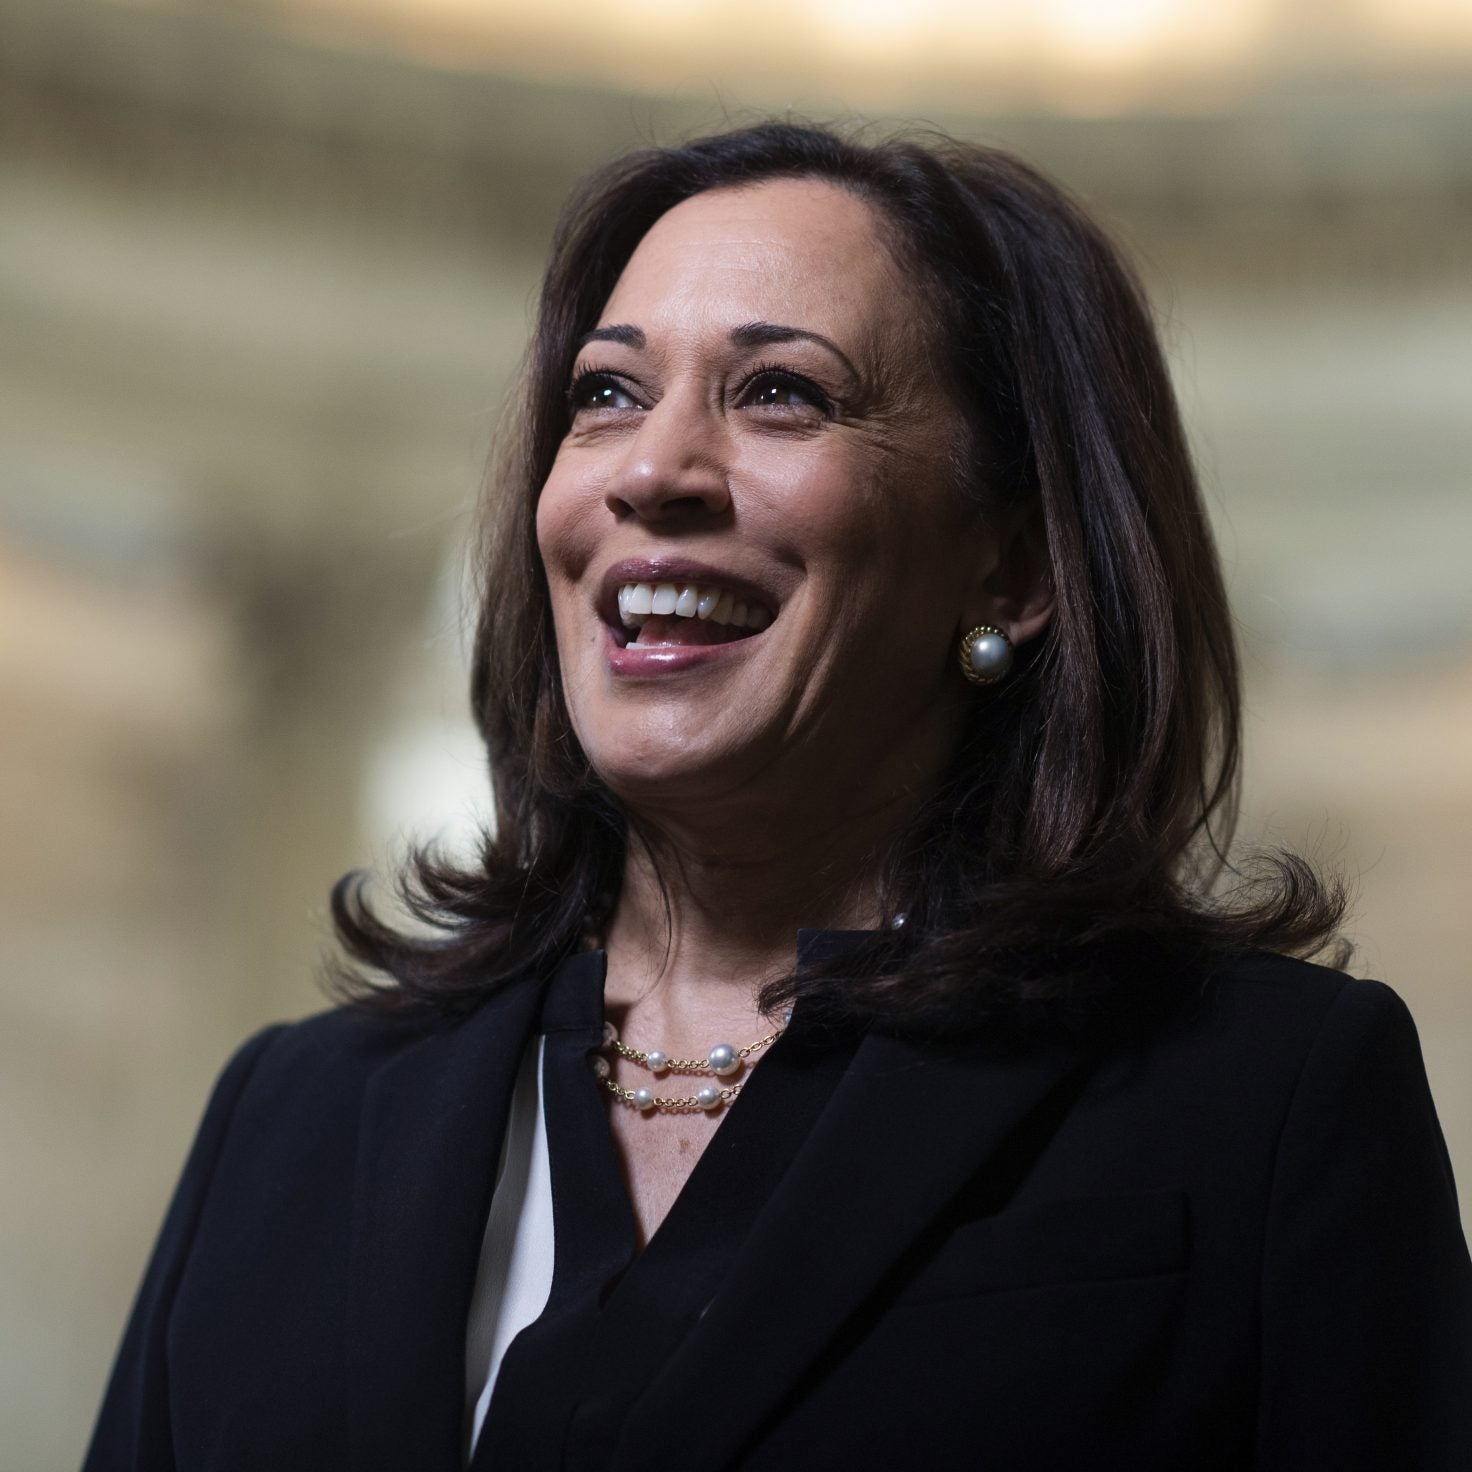 Joe Biden Picks Kamala Harris To Be His VP